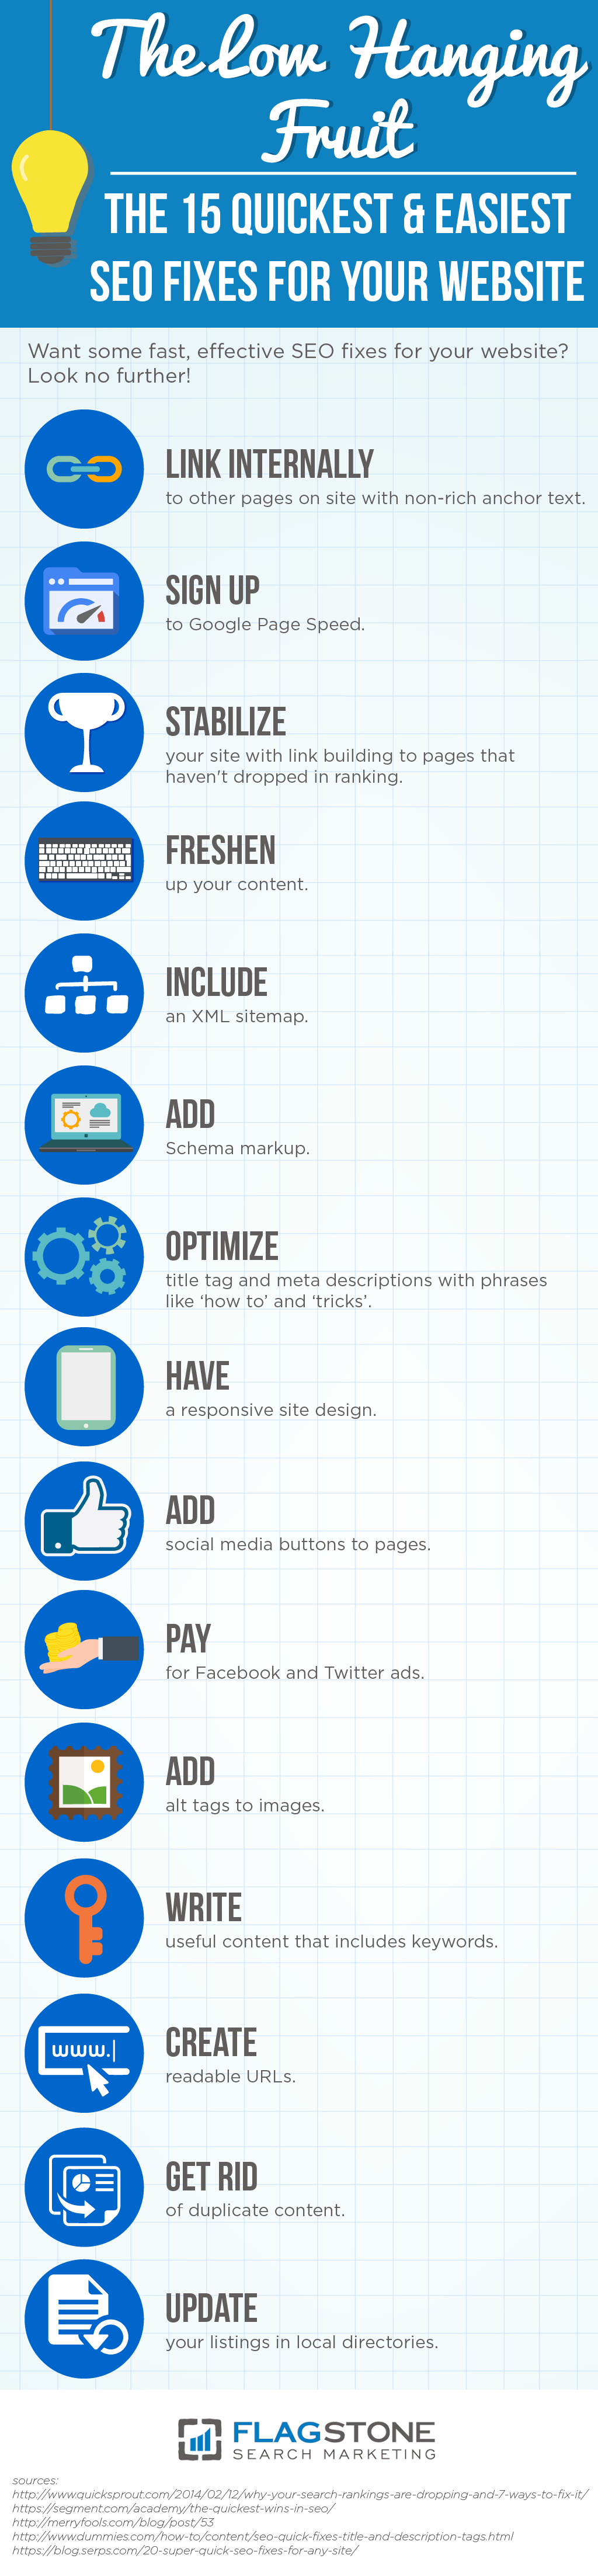 infographic for fast easy seo fixes